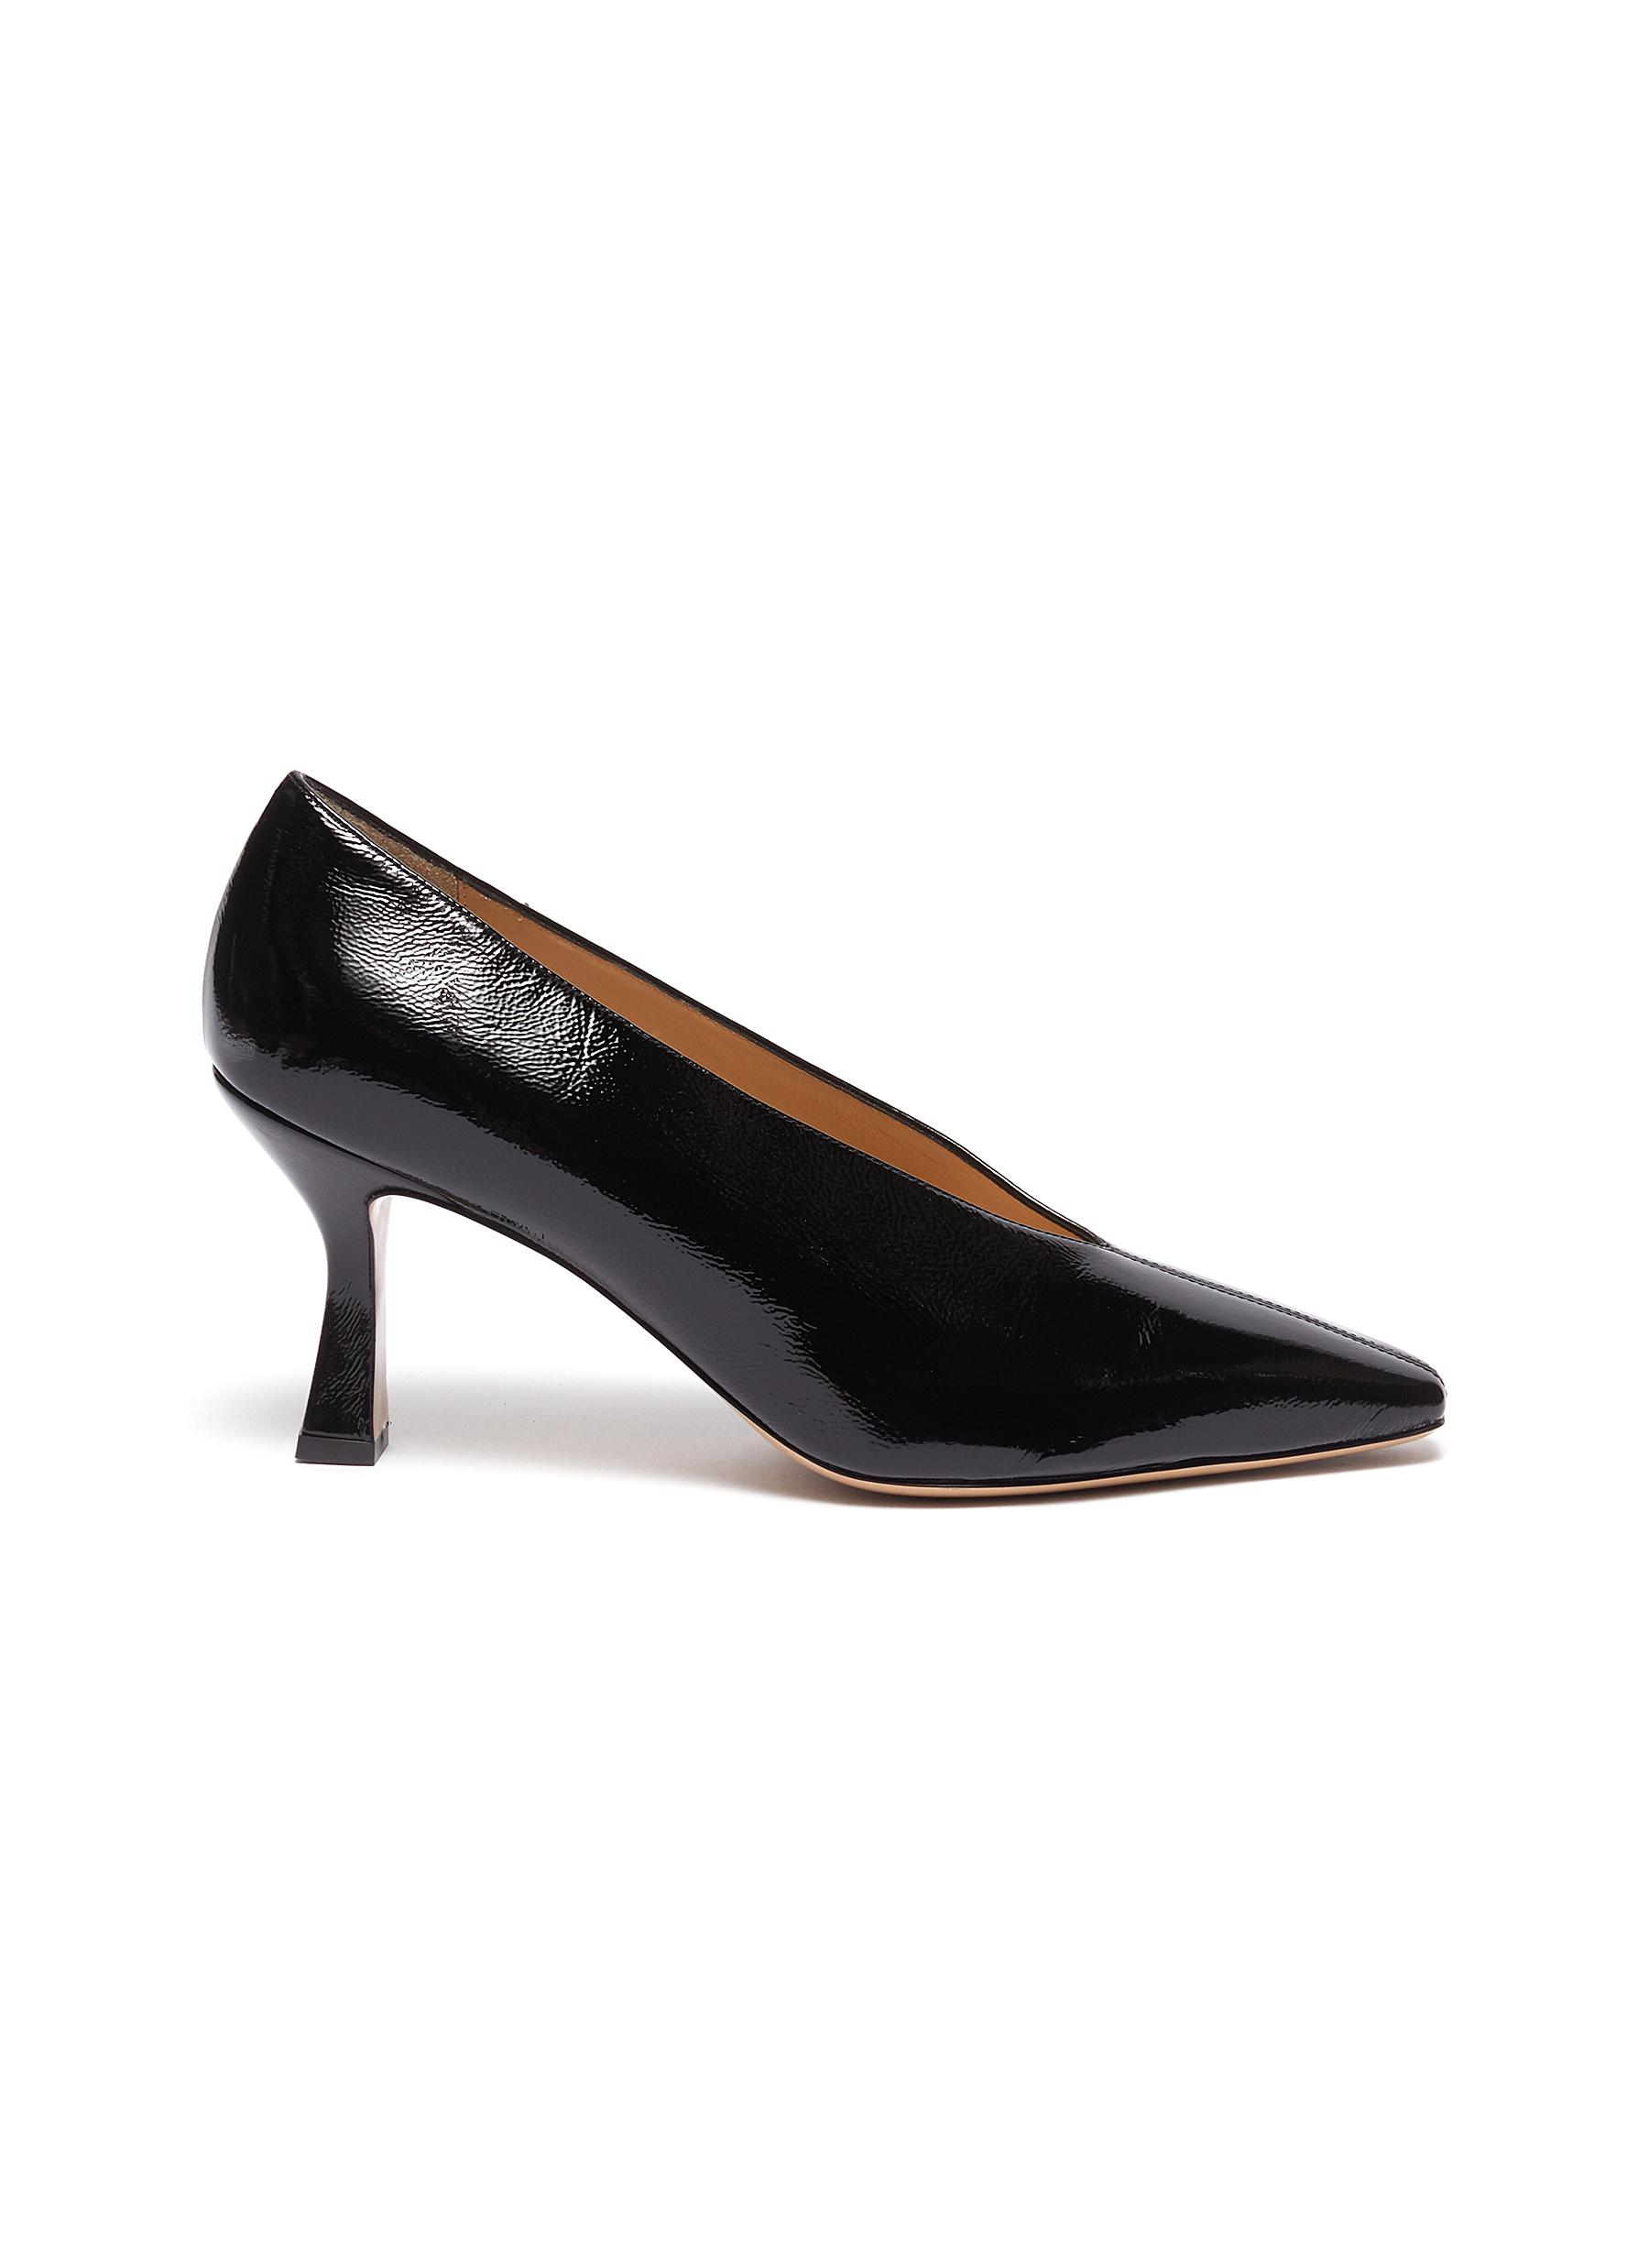 Cagno patent leather pumps by Fabio Rusconi